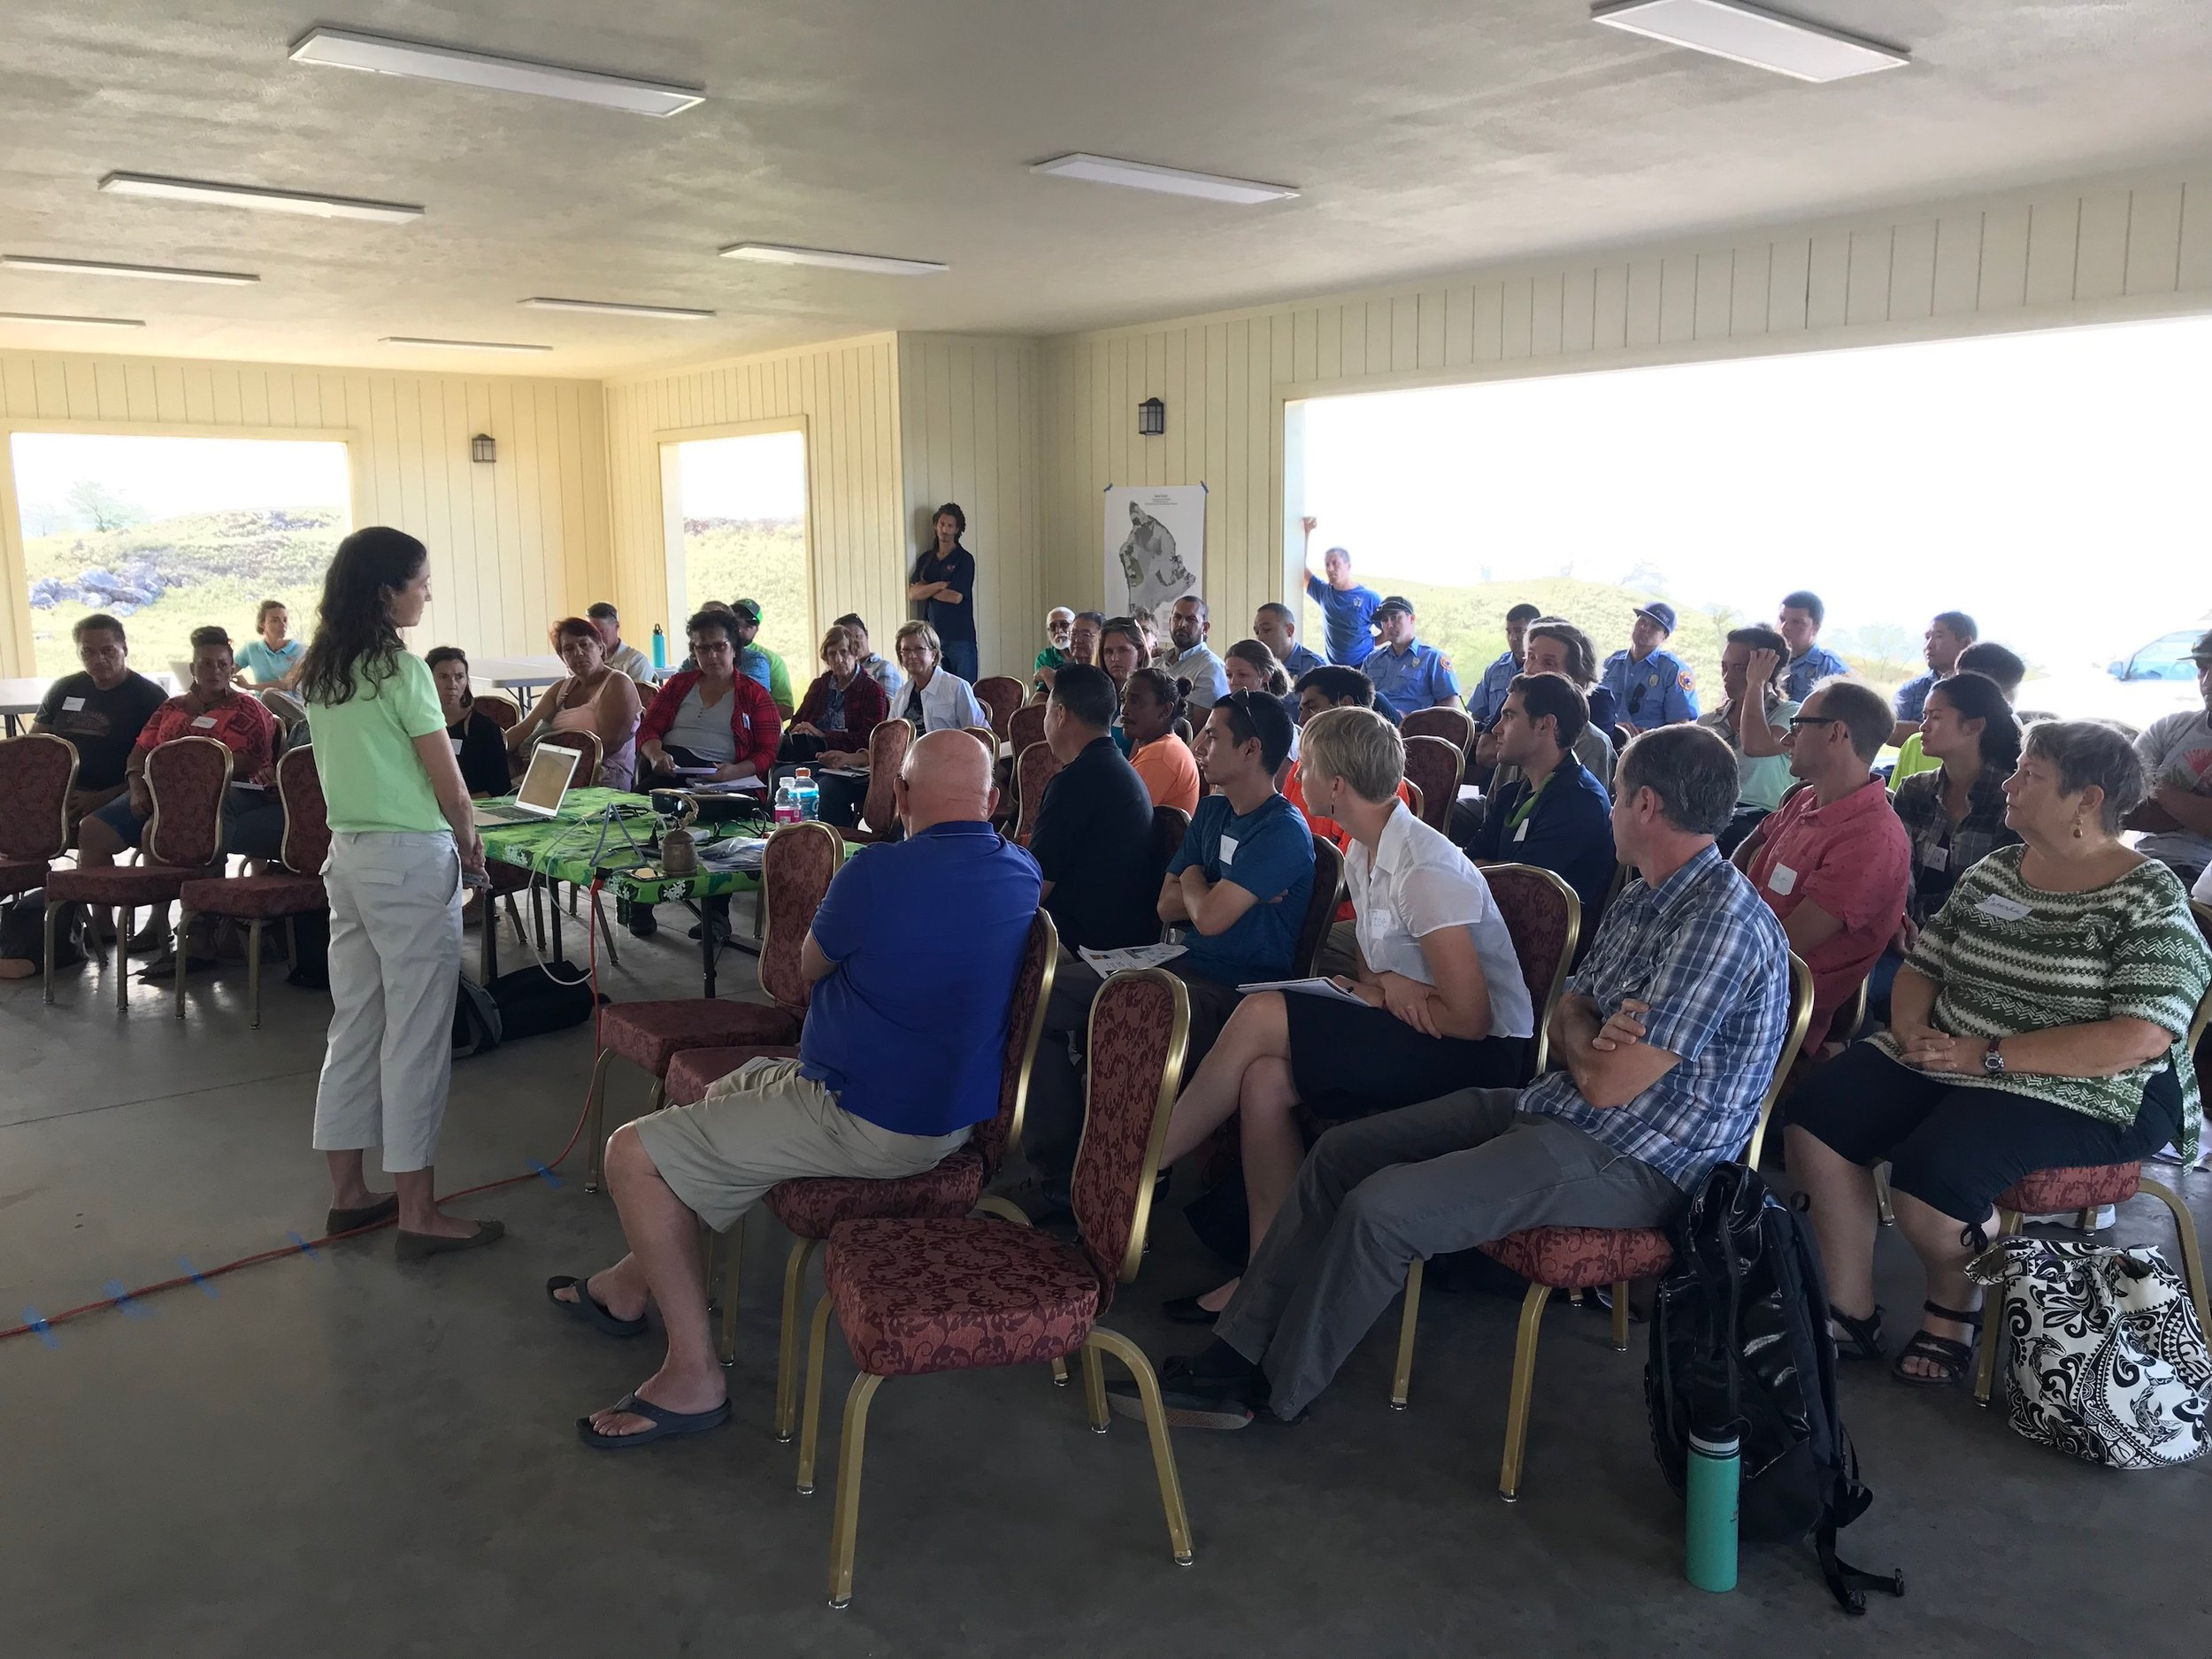 Hawaii Island Kailapa Vegetative Fuels Management Collaborative Action Planning Workshop_2_26_2019_53.jpg